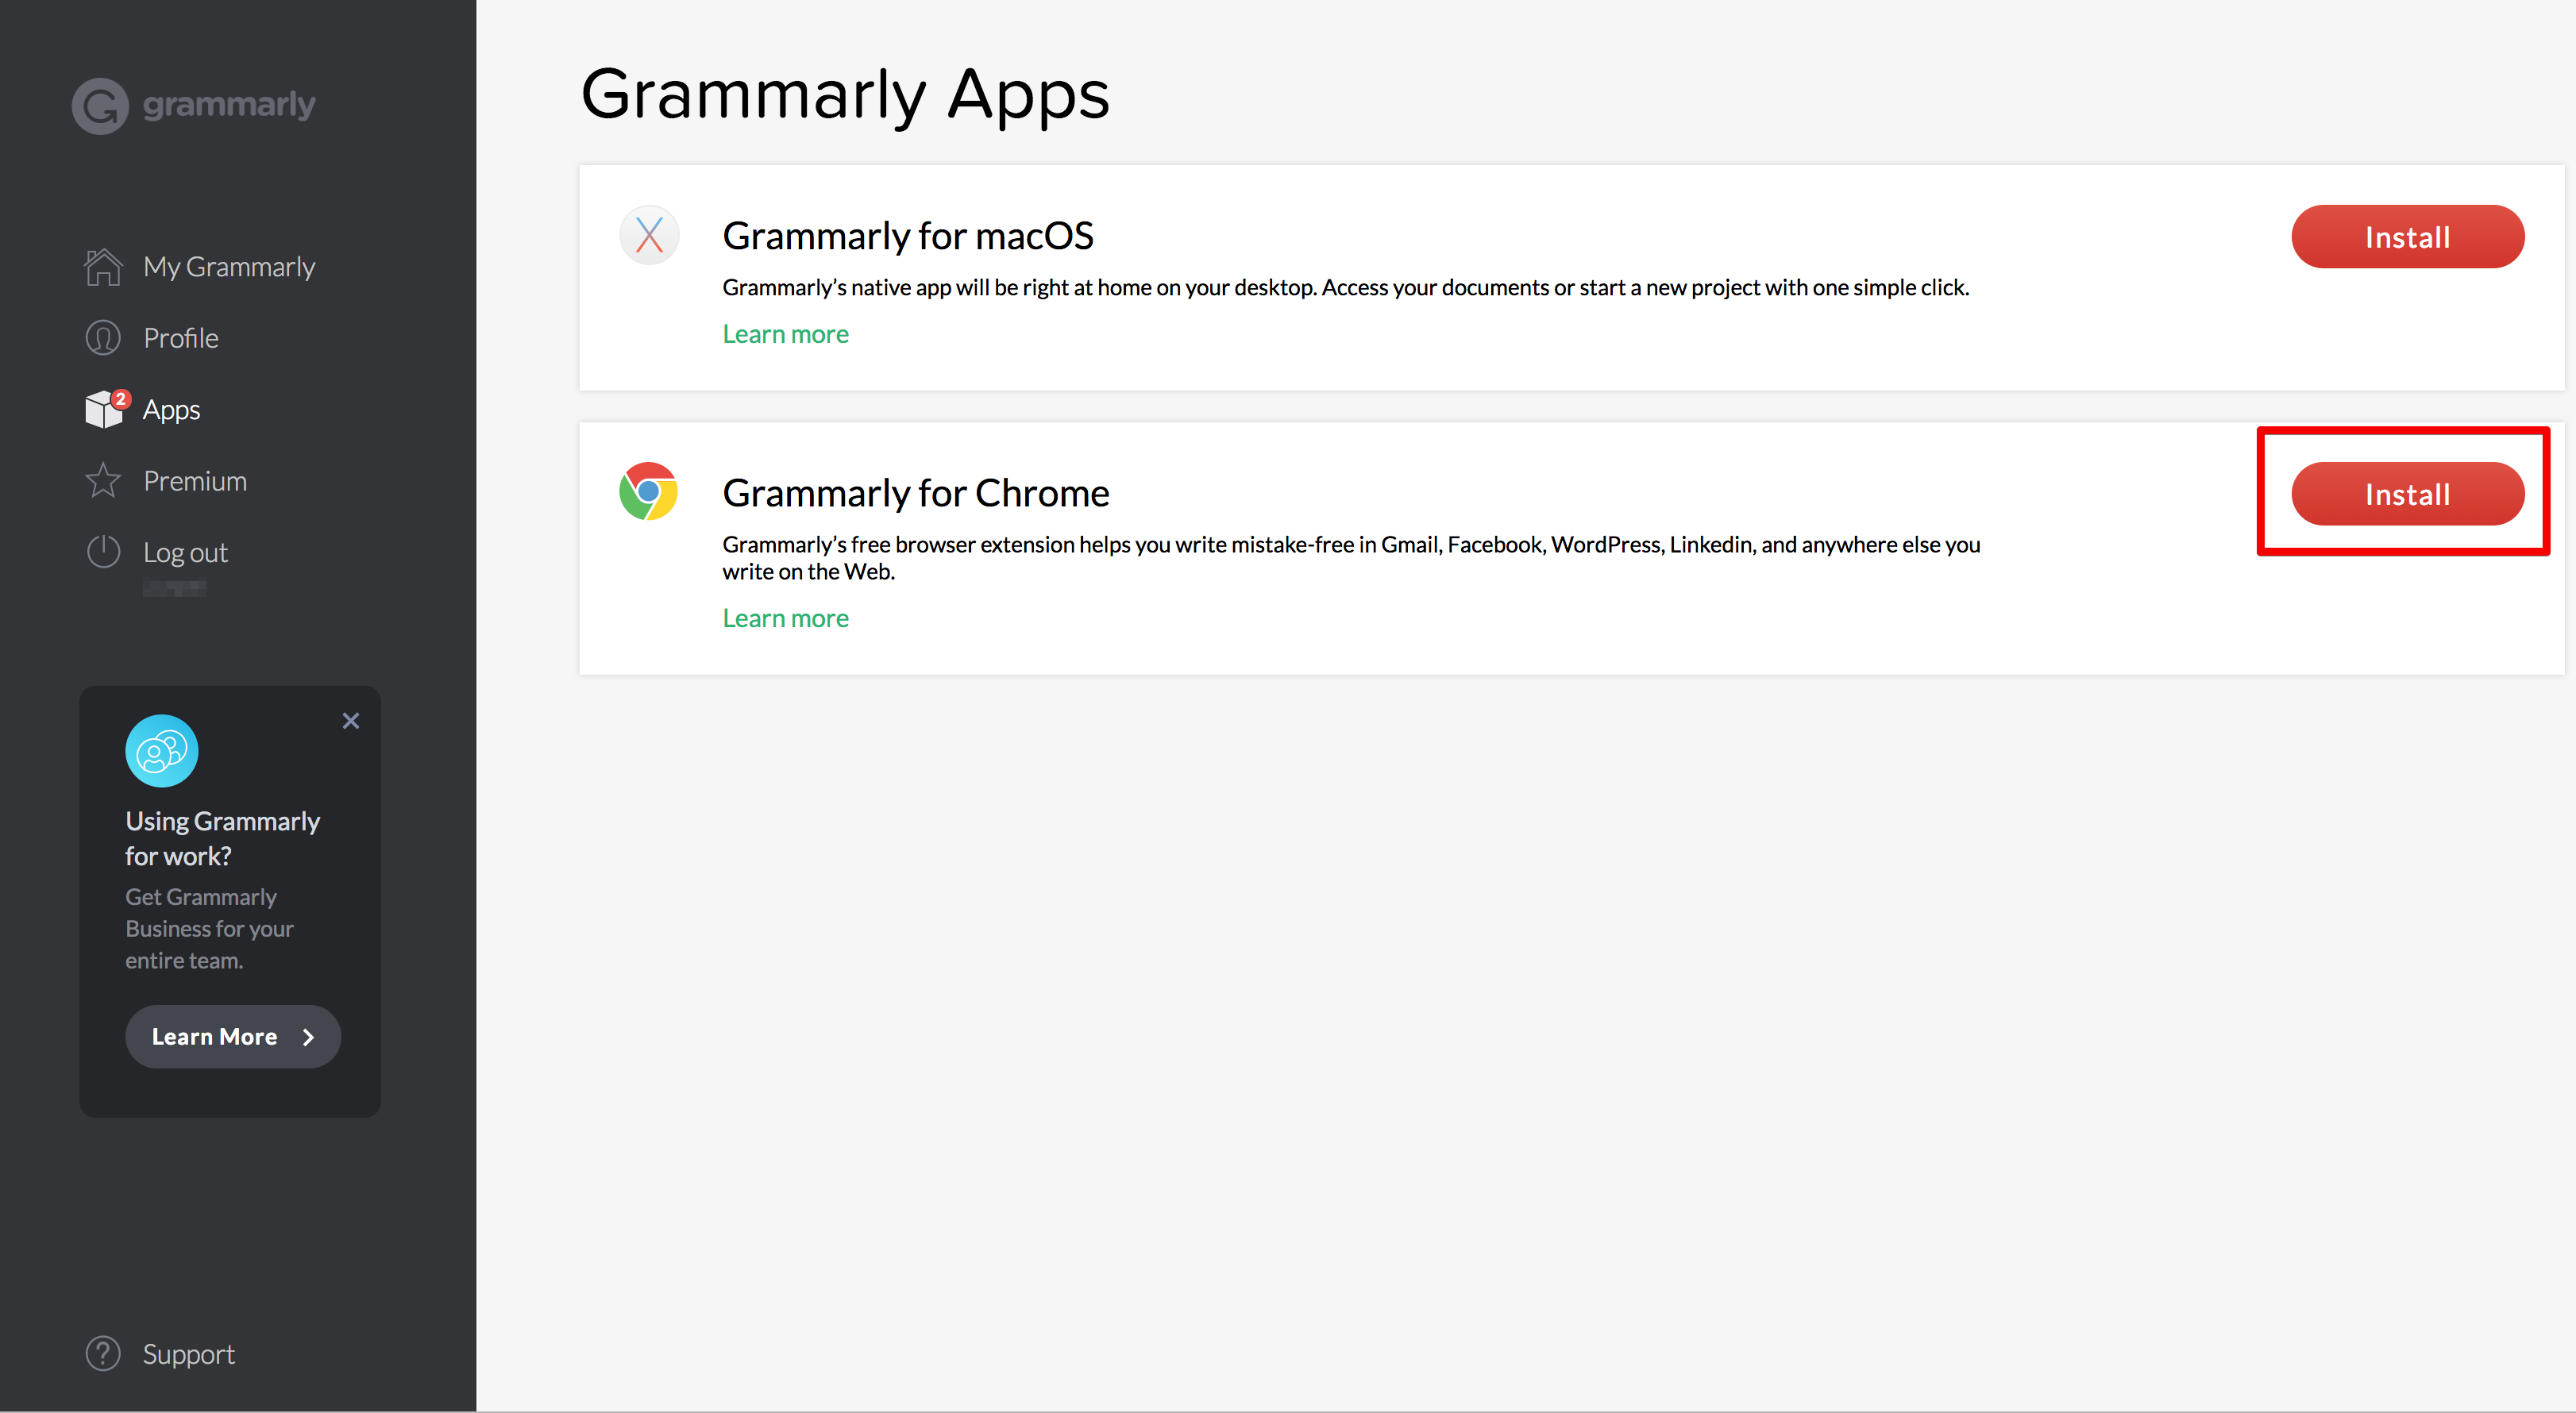 Grammarly Apps 2019-02-23 08-29-17.png